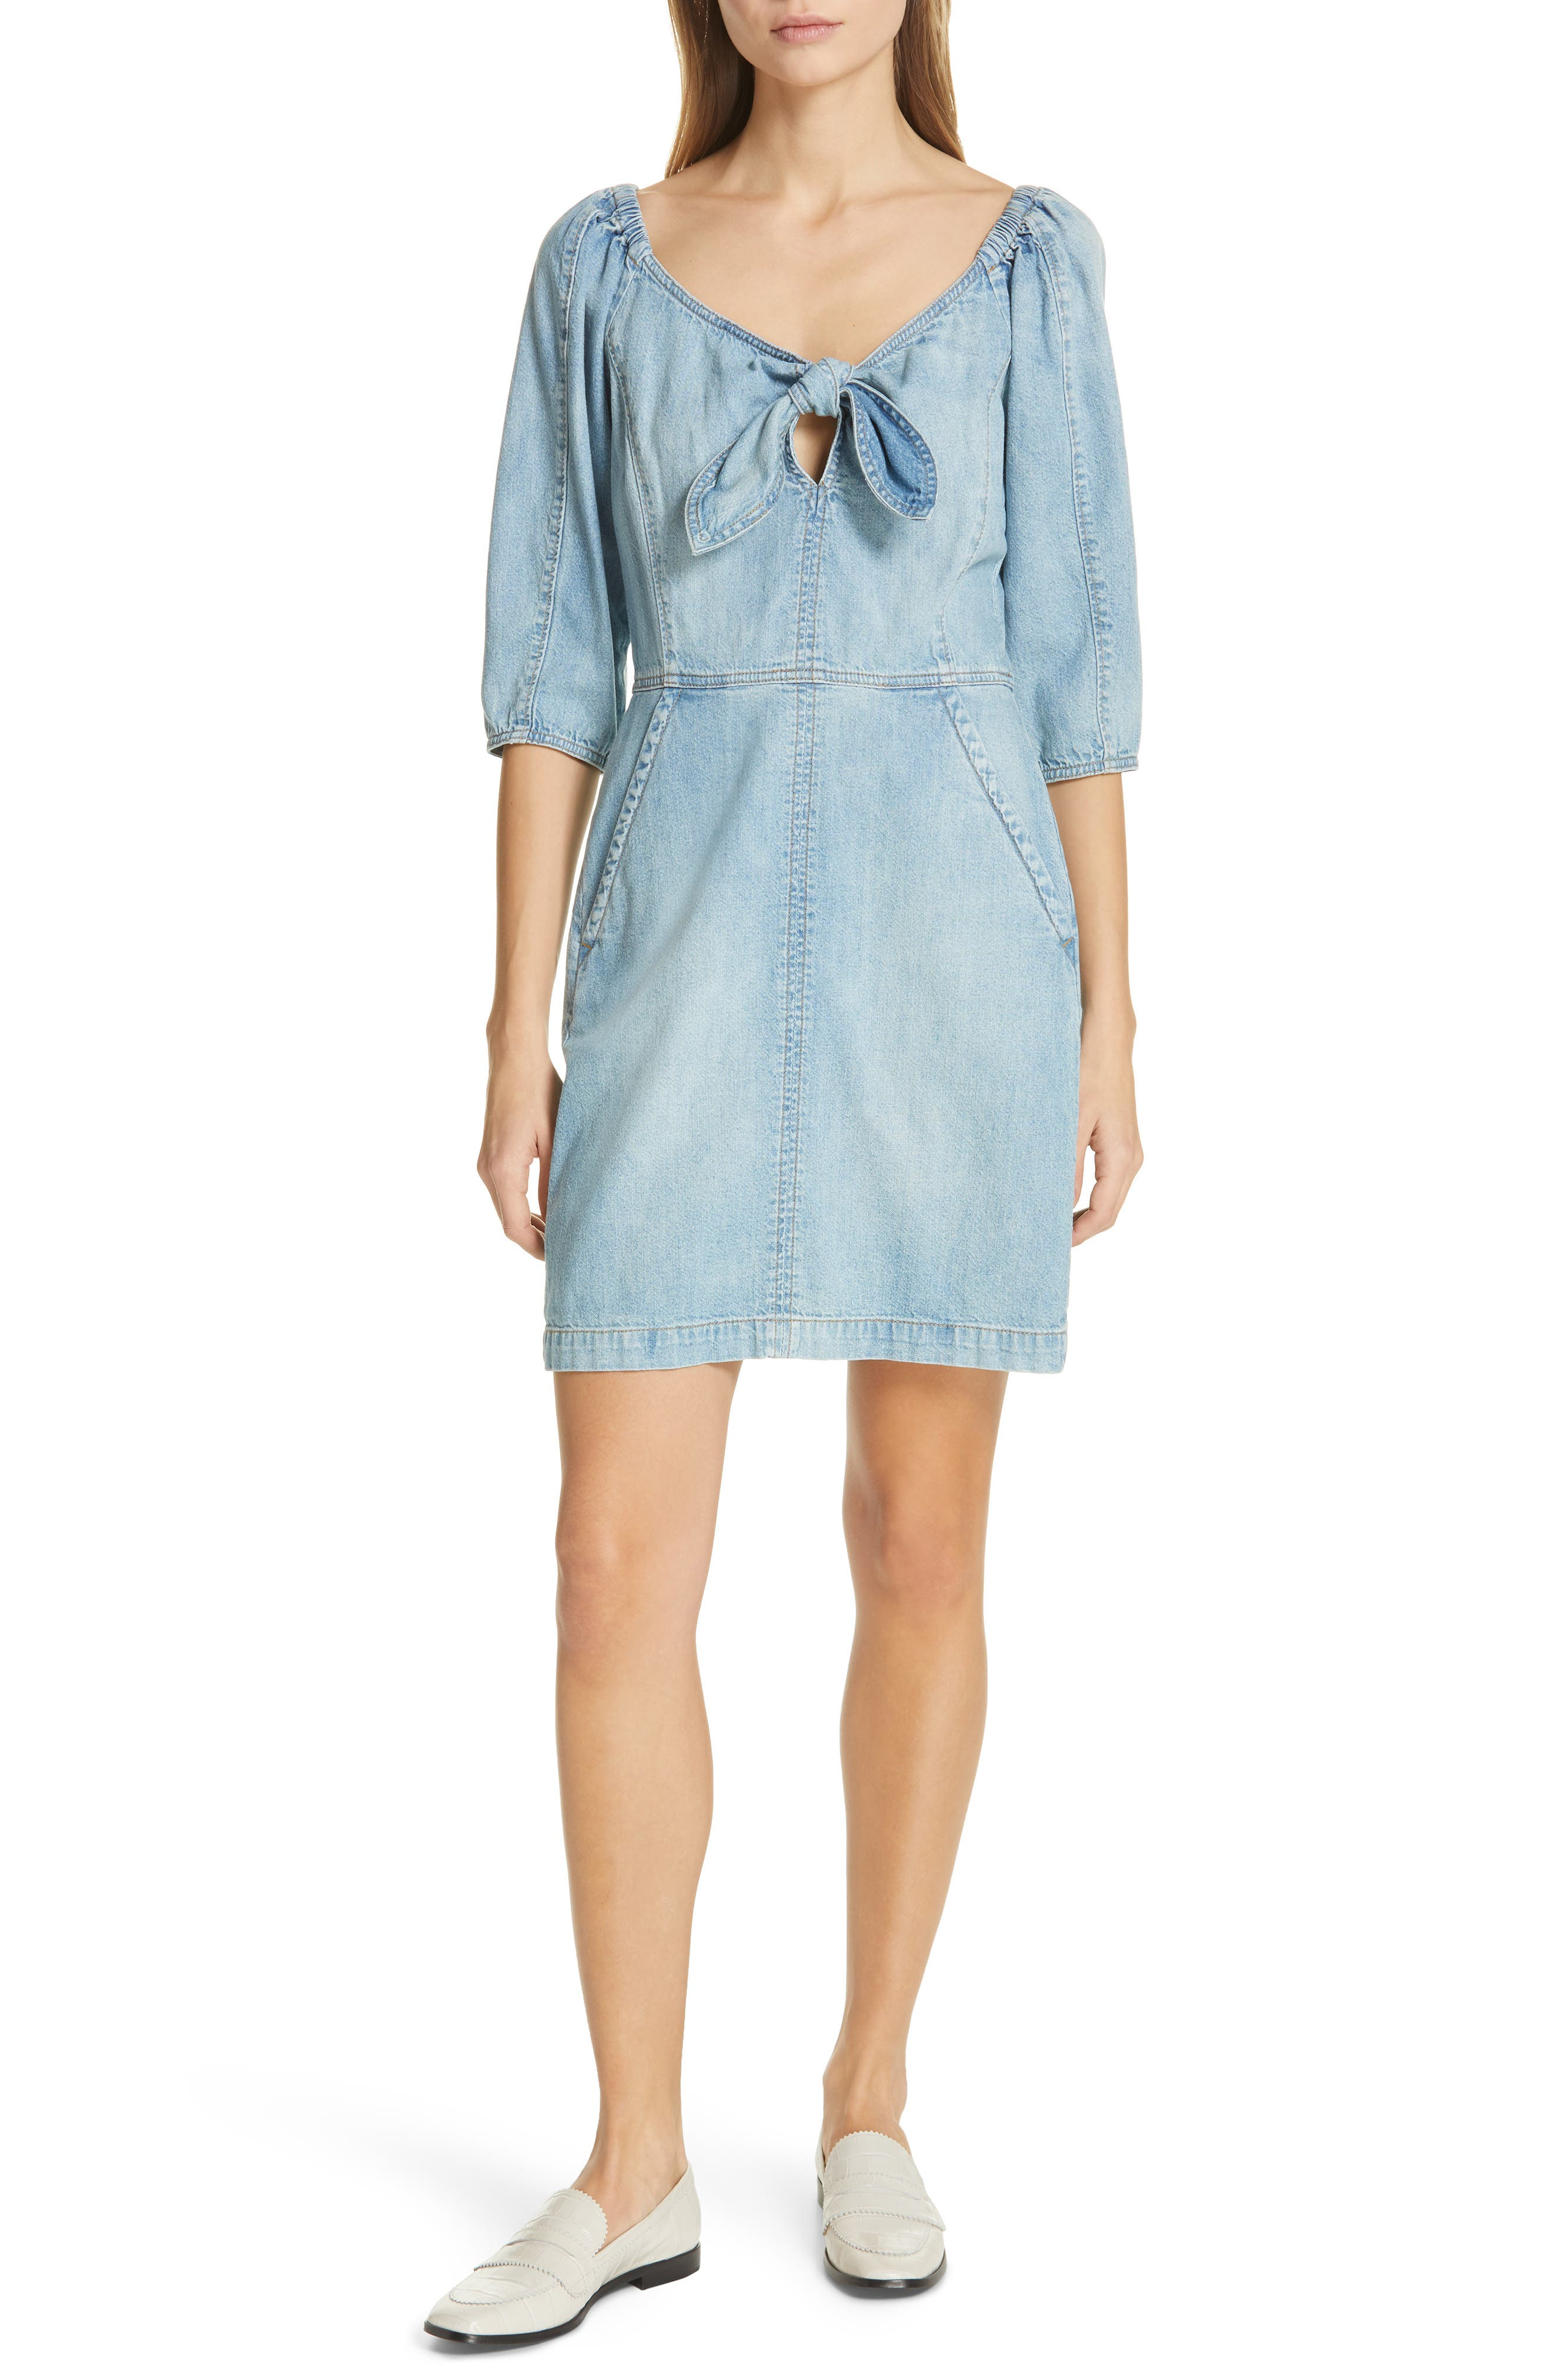 LA VIE REBECCA TAYLOR Tie Neck Denim Dress, Main, color, FORGET ME NOT WASH